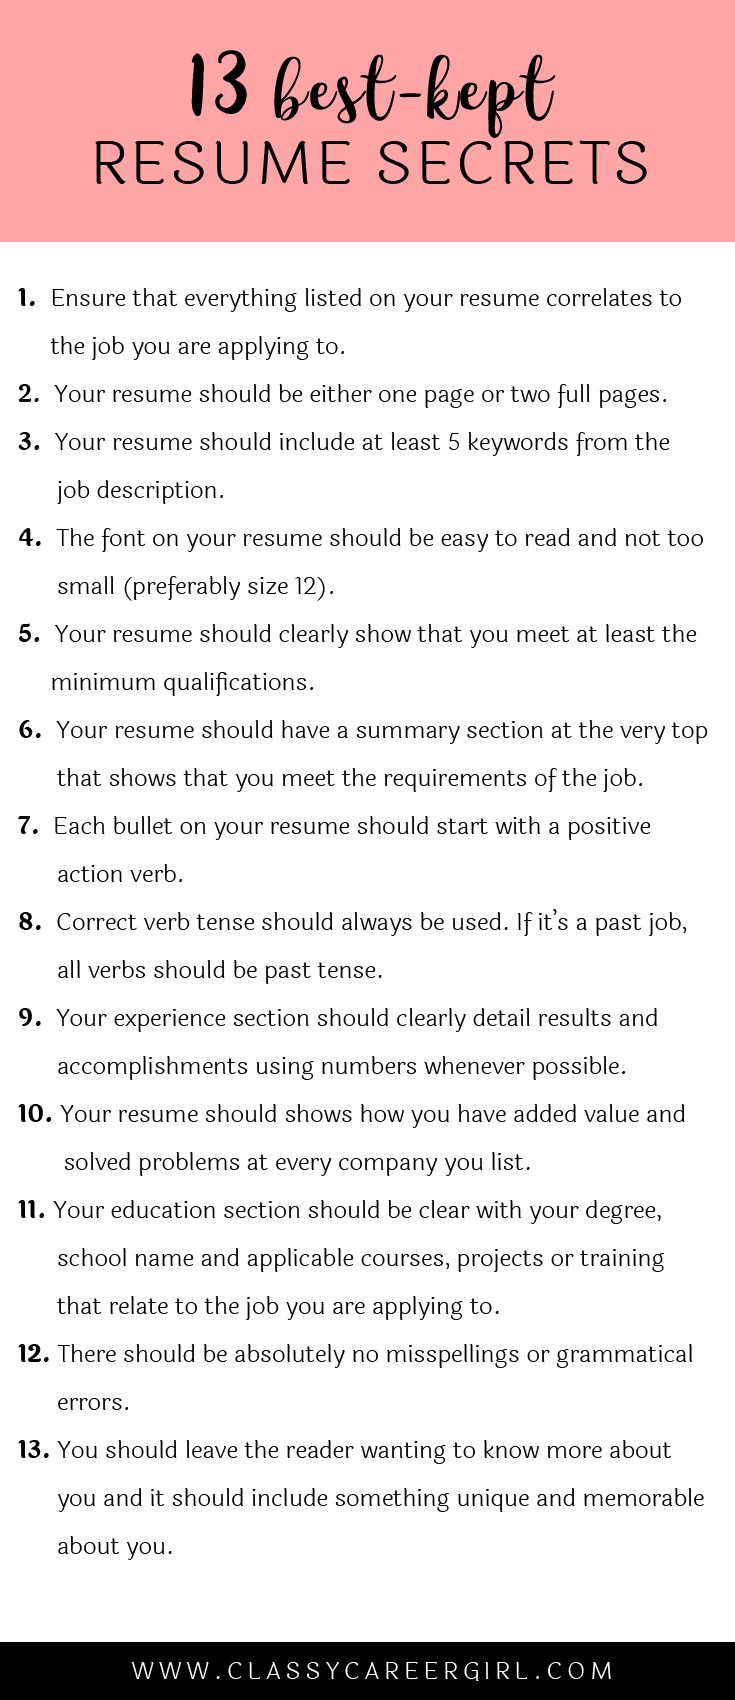 Opposenewapstandardsus  Winsome  Ideas About Resume On Pinterest  Cv Format Resume  With Marvelous Some Hiring Managers Will Toss Your Resume Out If You Dont Know These  With Cute Resume Babysitter Also Business Resume Example In Addition The Purpose Of A Resume And Bank Resume Examples As Well As College Activities Resume Additionally Software Engineer Resumes From Pinterestcom With Opposenewapstandardsus  Marvelous  Ideas About Resume On Pinterest  Cv Format Resume  With Cute Some Hiring Managers Will Toss Your Resume Out If You Dont Know These  And Winsome Resume Babysitter Also Business Resume Example In Addition The Purpose Of A Resume From Pinterestcom